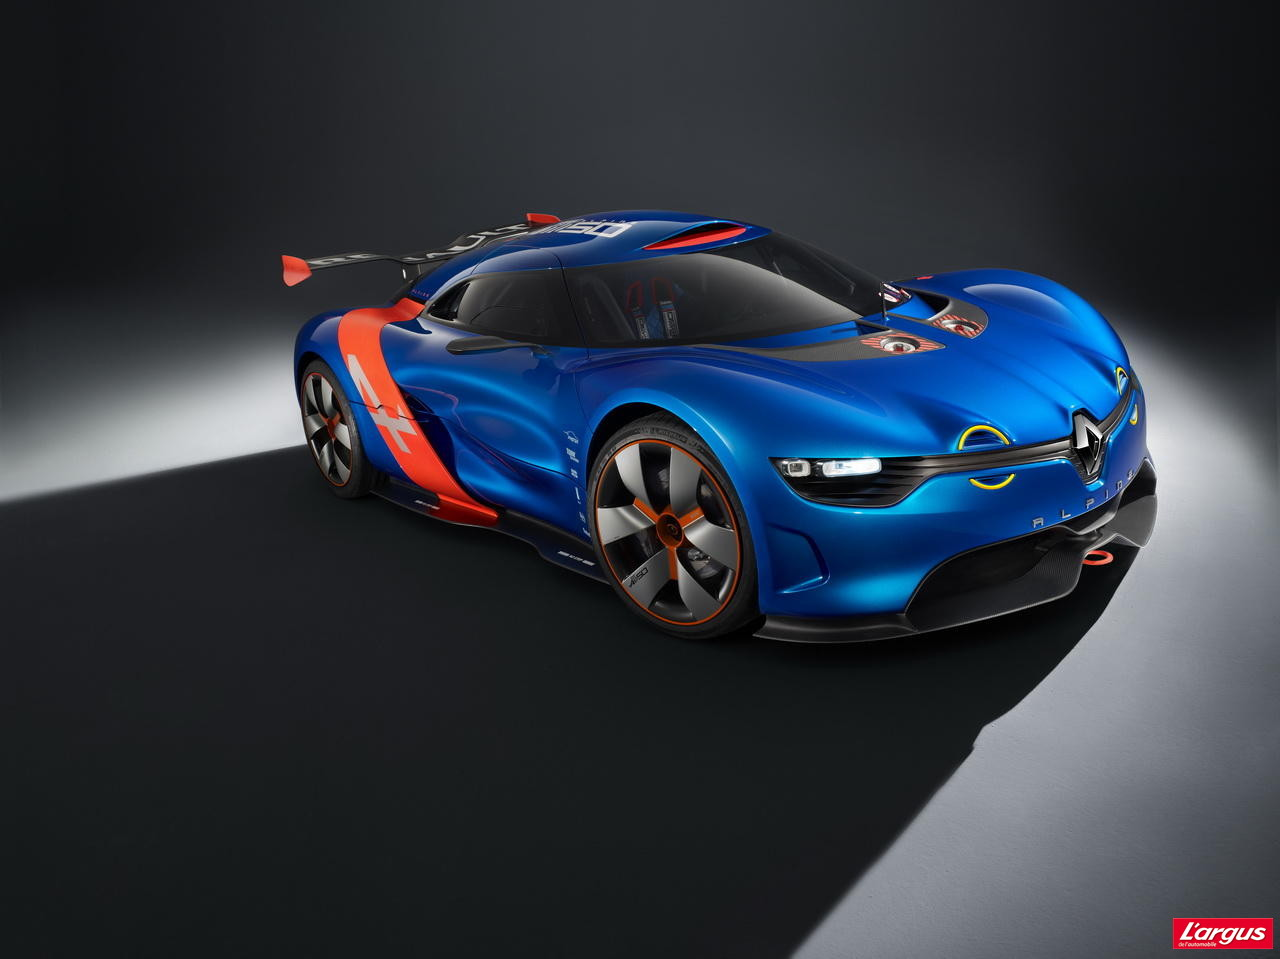 http://www.largus.fr/images/images/Renault_Alpine_A110-50_57.JPG